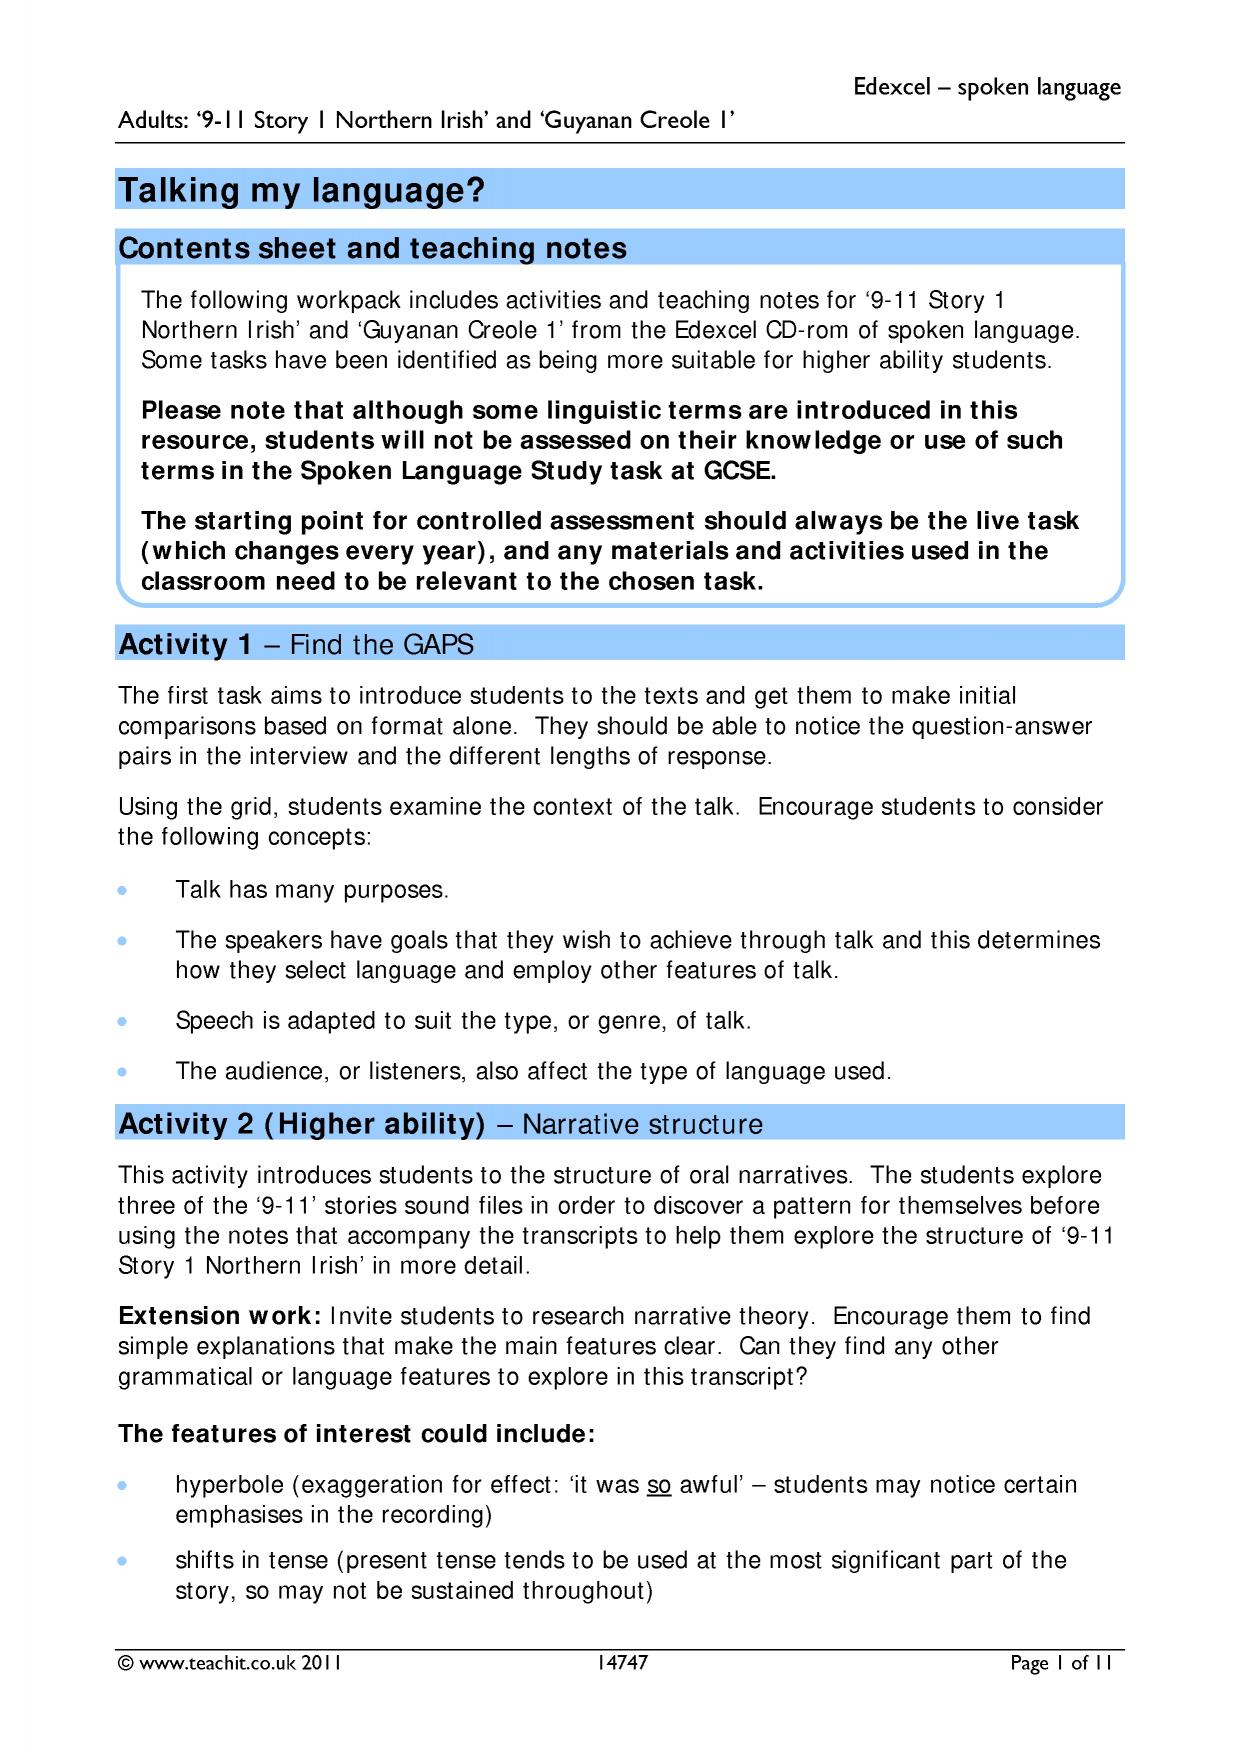 idiolect essay aqa My essay on spoken language is on idiolect language and slang which is used at schools, home and public and you must describe the ways of using spoken lan.